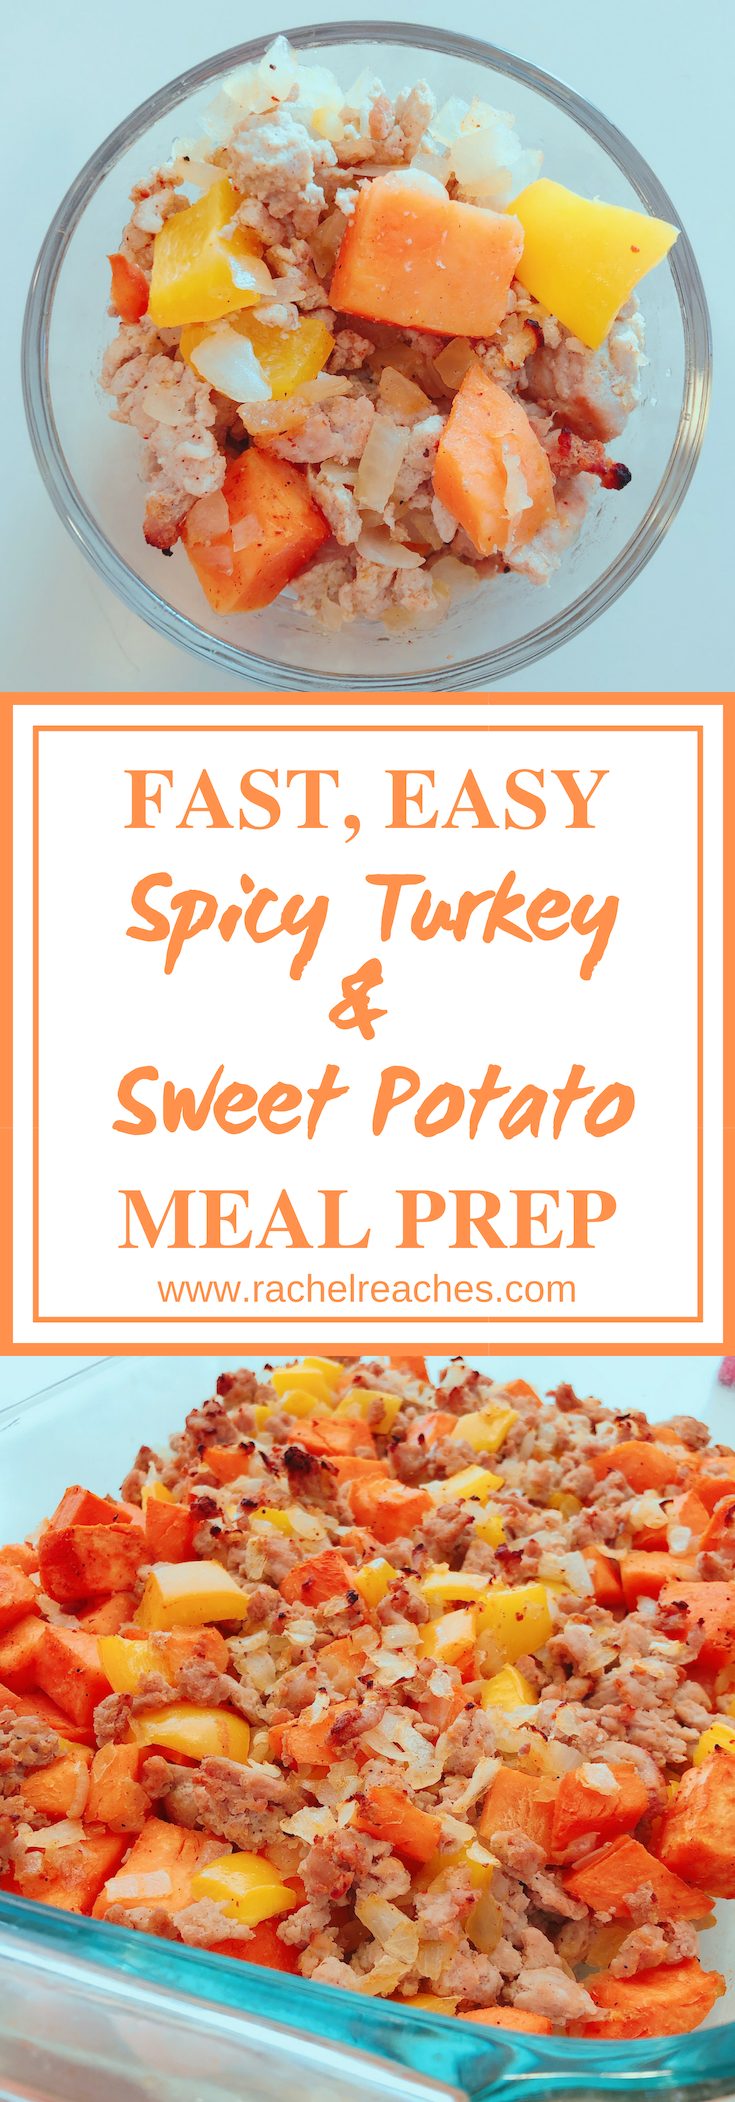 Copy of Turkey & Sweet Potato - 21 Day Fix Pin.png